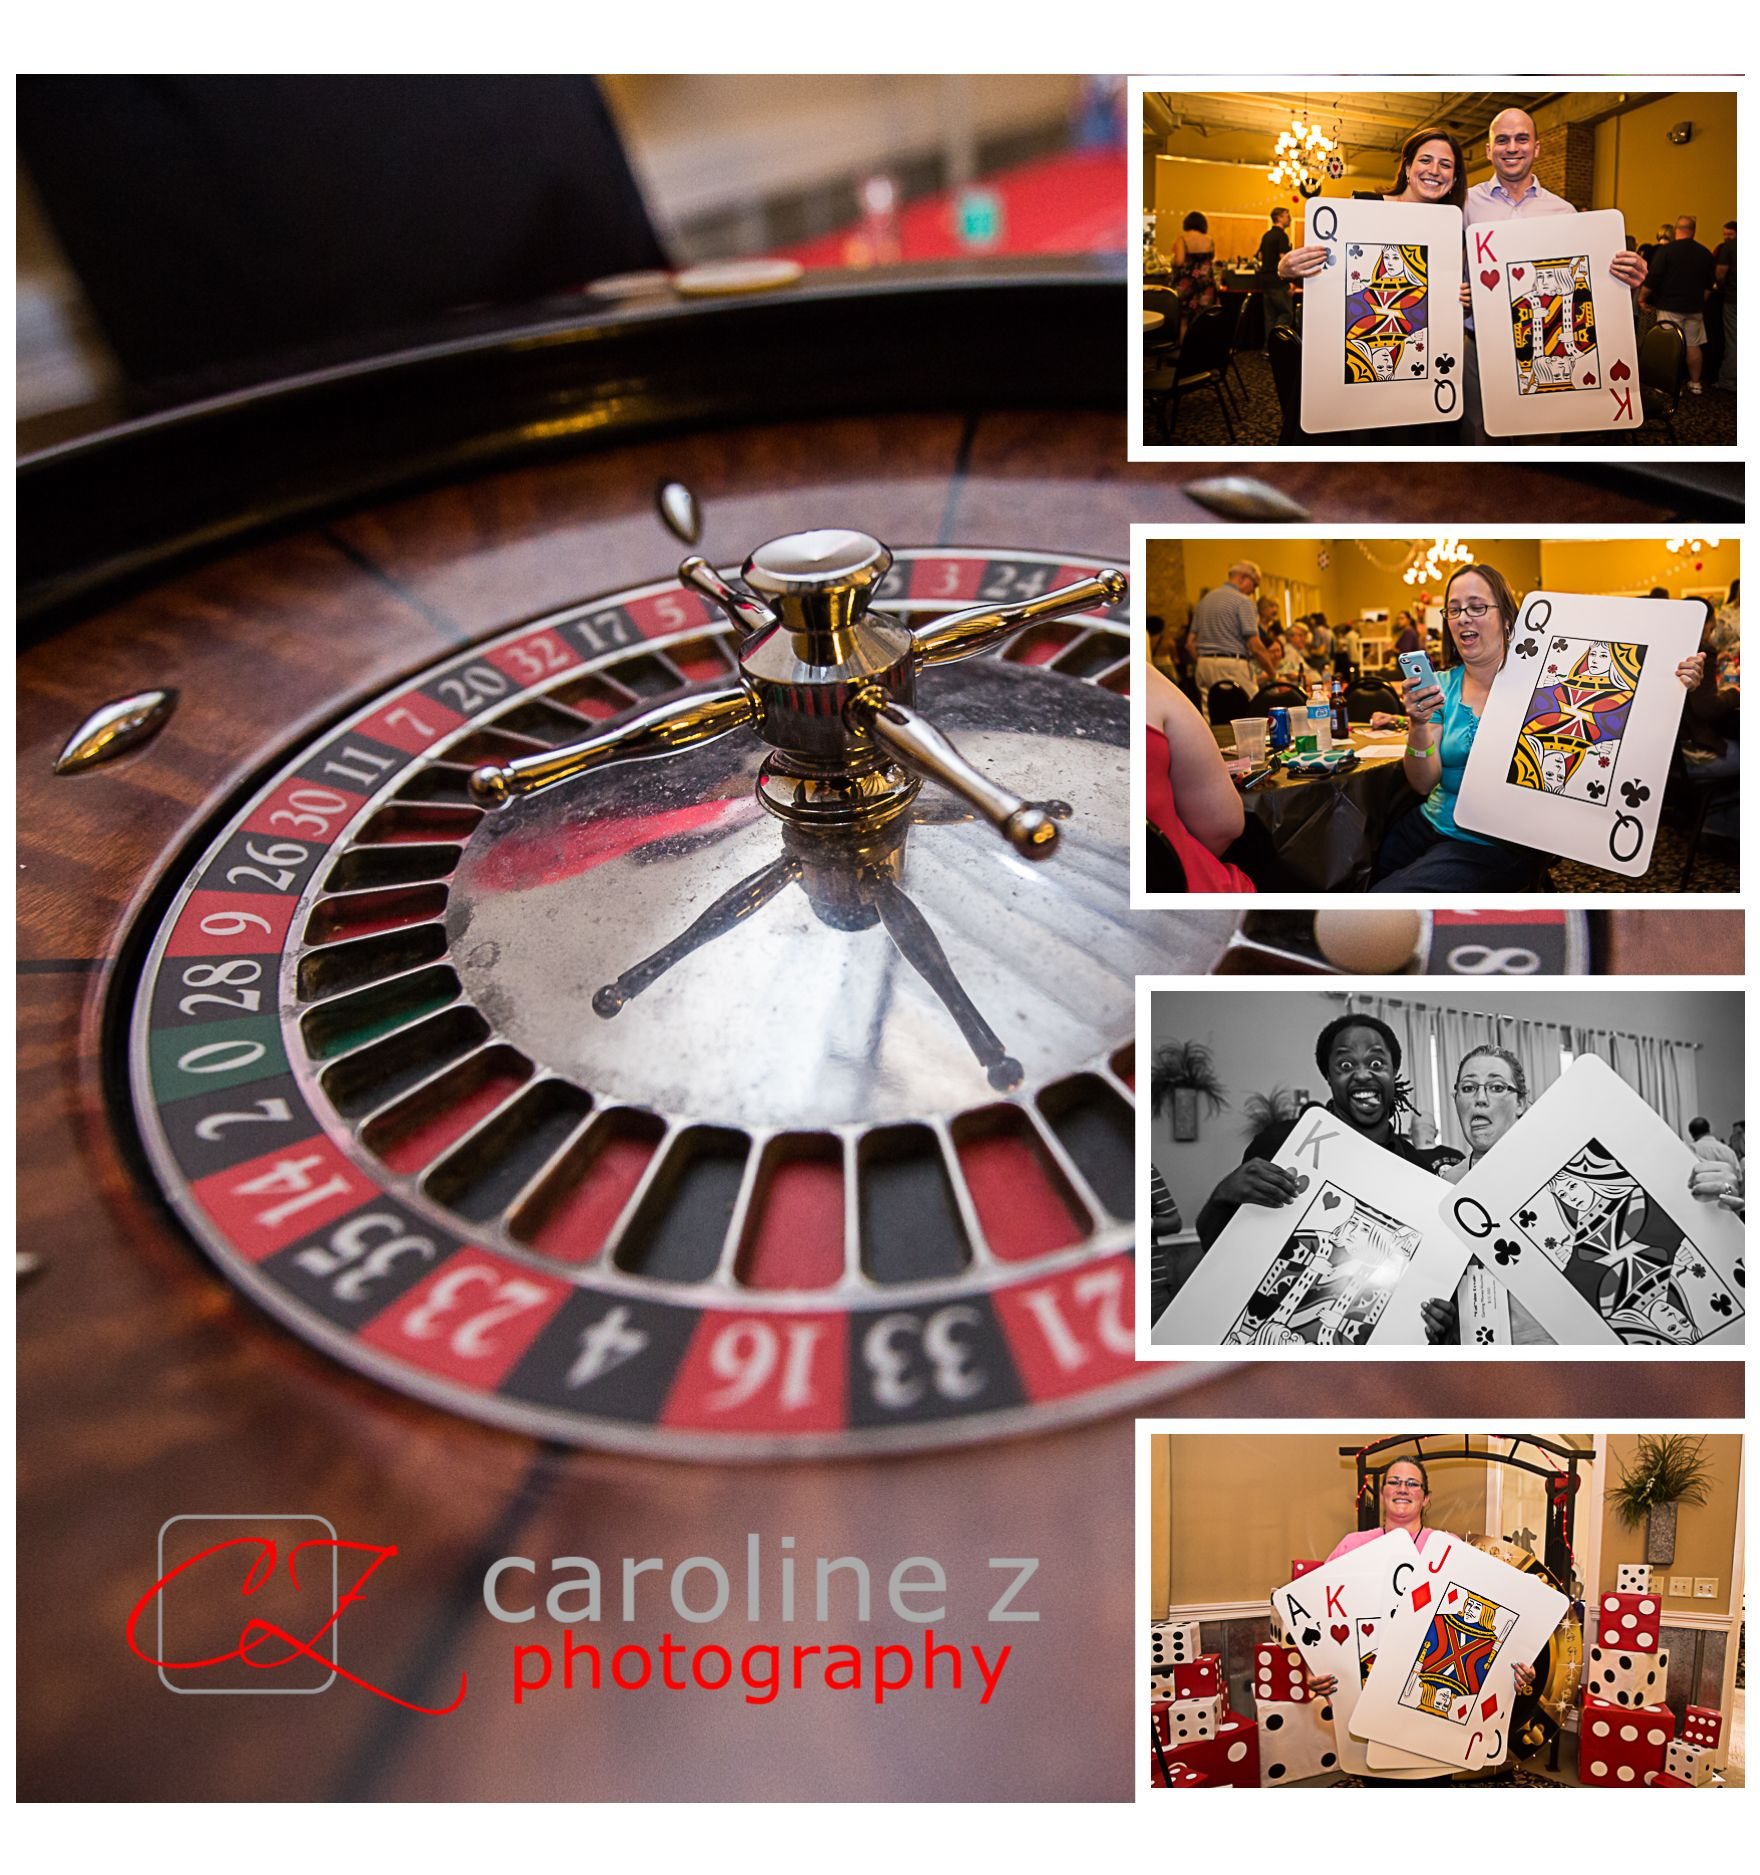 Catsino Royale #charity event for Safe Haven for Cats. A very fun #event with #roulette, #poker, and other #games. To see more go to: www.carolinezphotography.com.